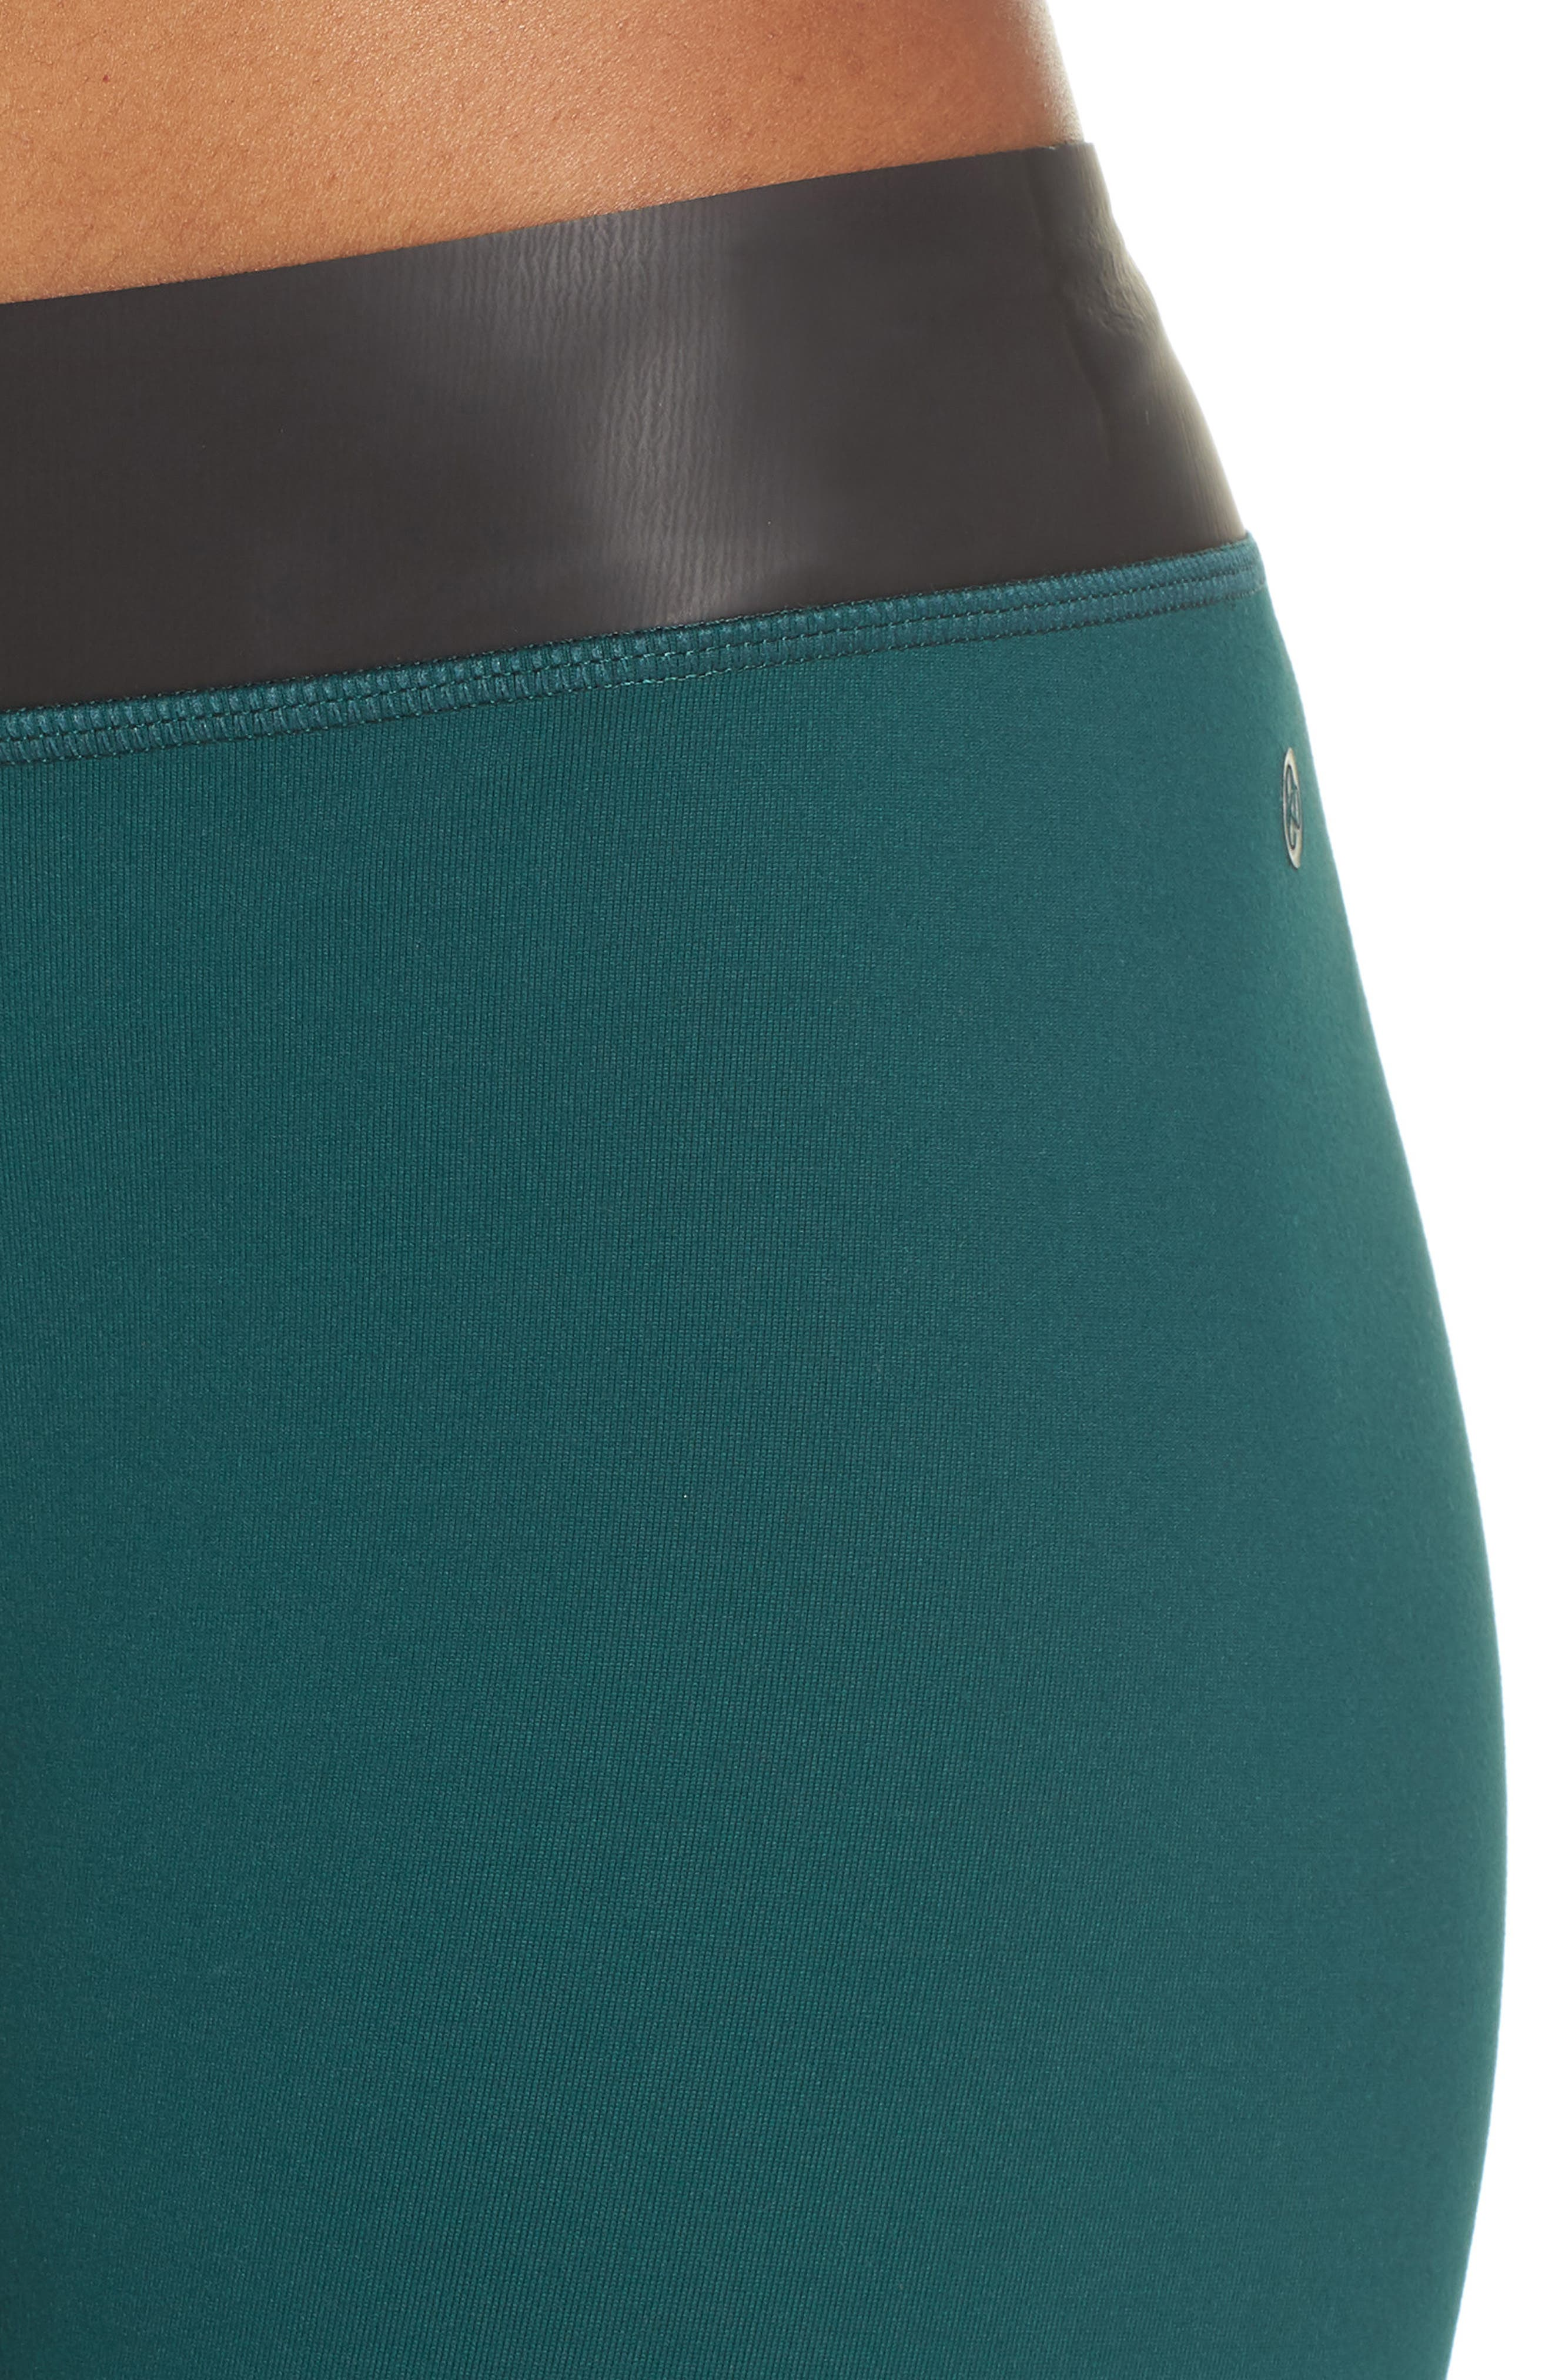 Neo Banded Crop Leggings,                             Alternate thumbnail 4, color,                             Green Bug